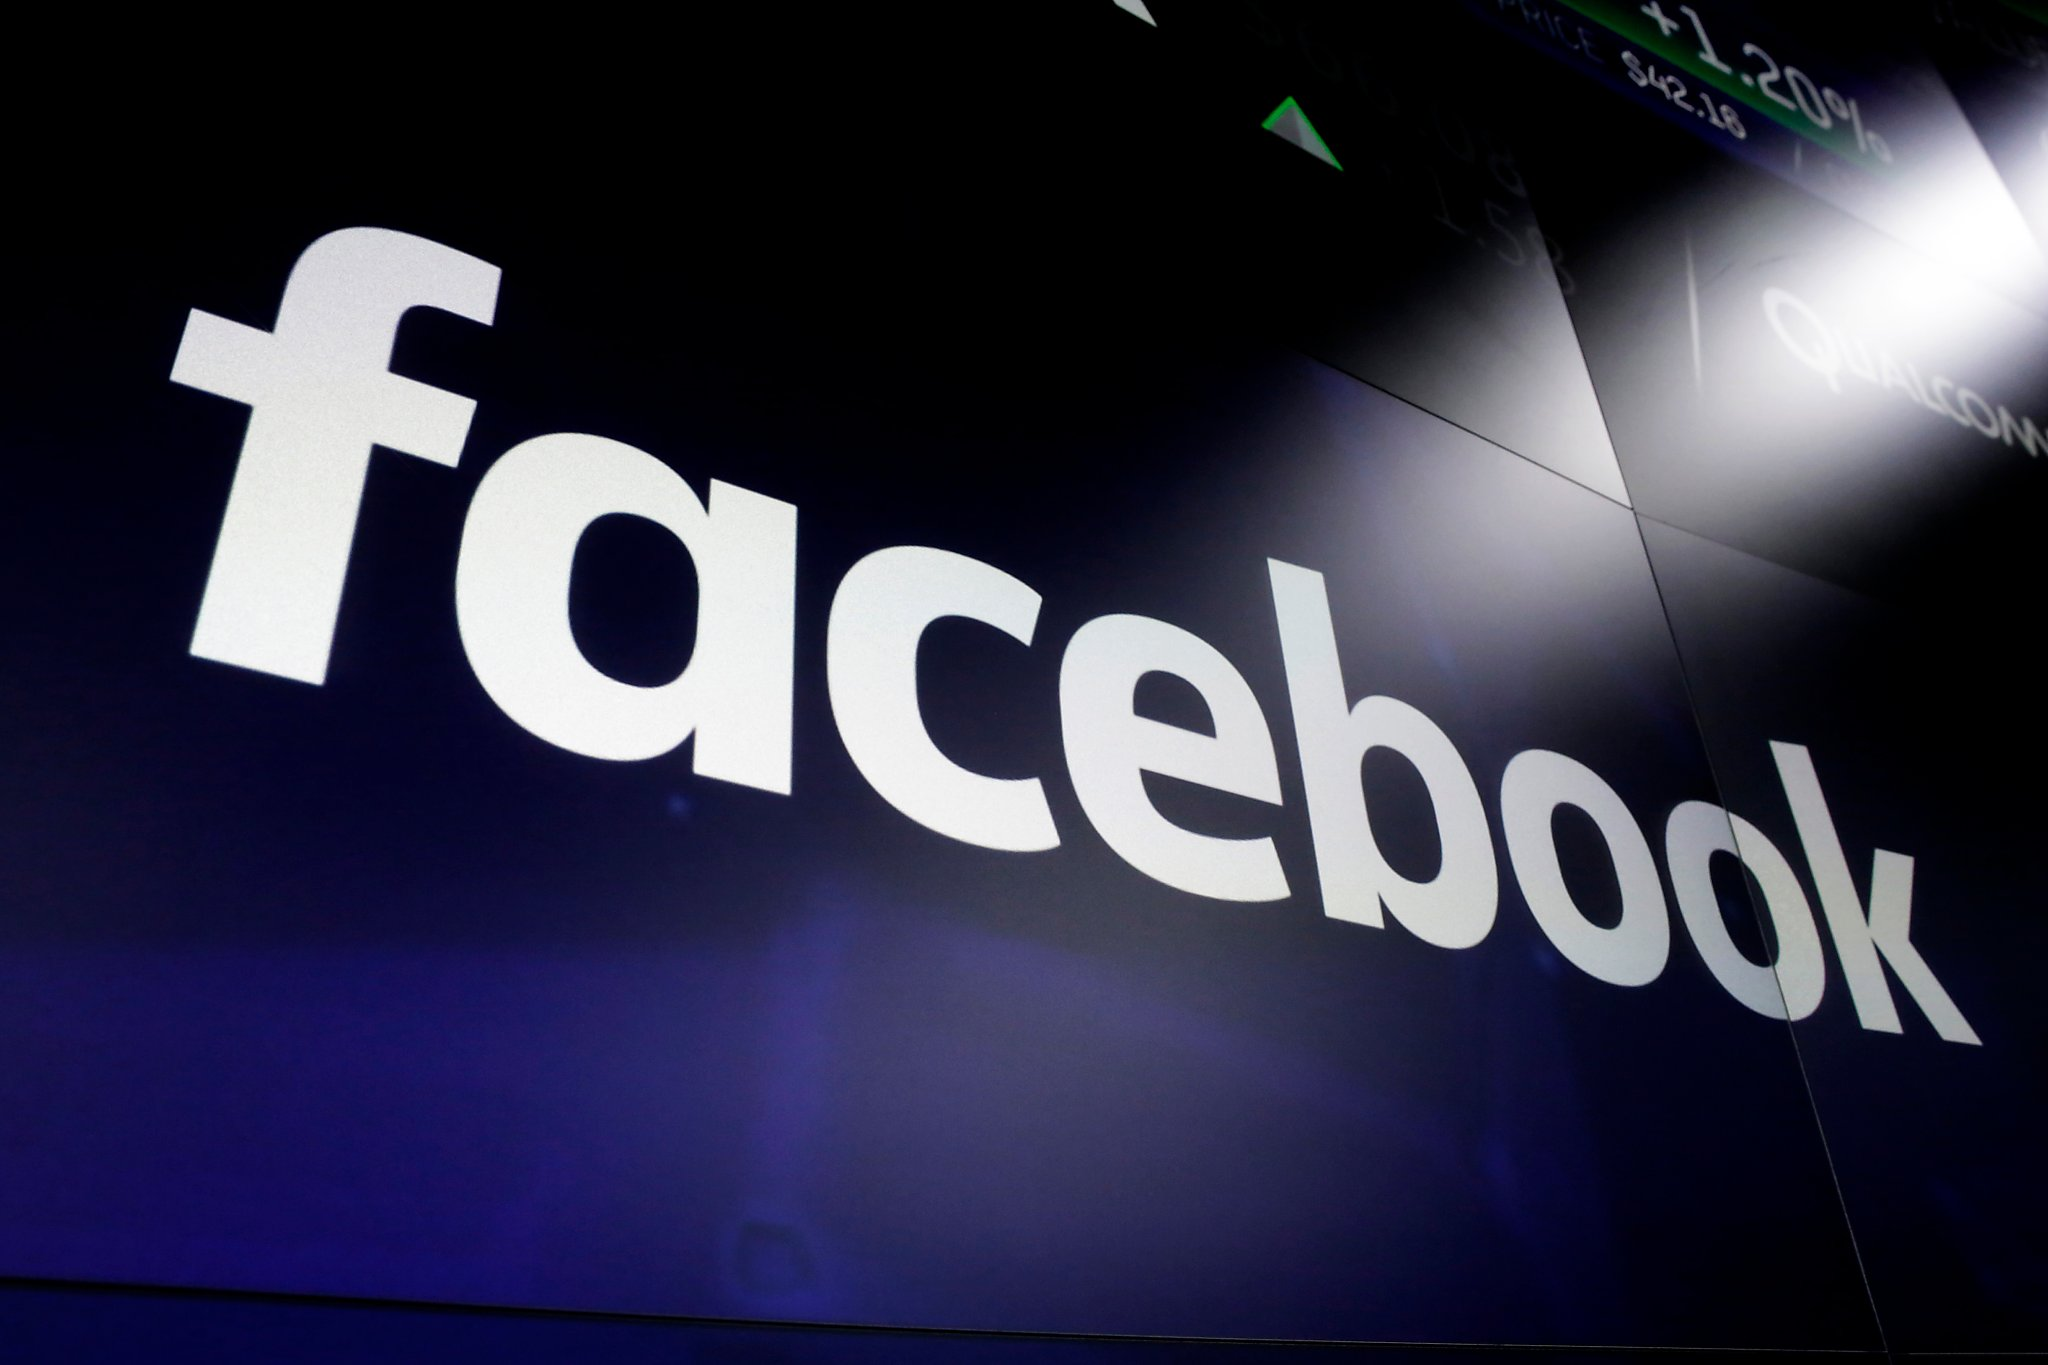 Facebook cancels San Francisco conference over coronavirus fears